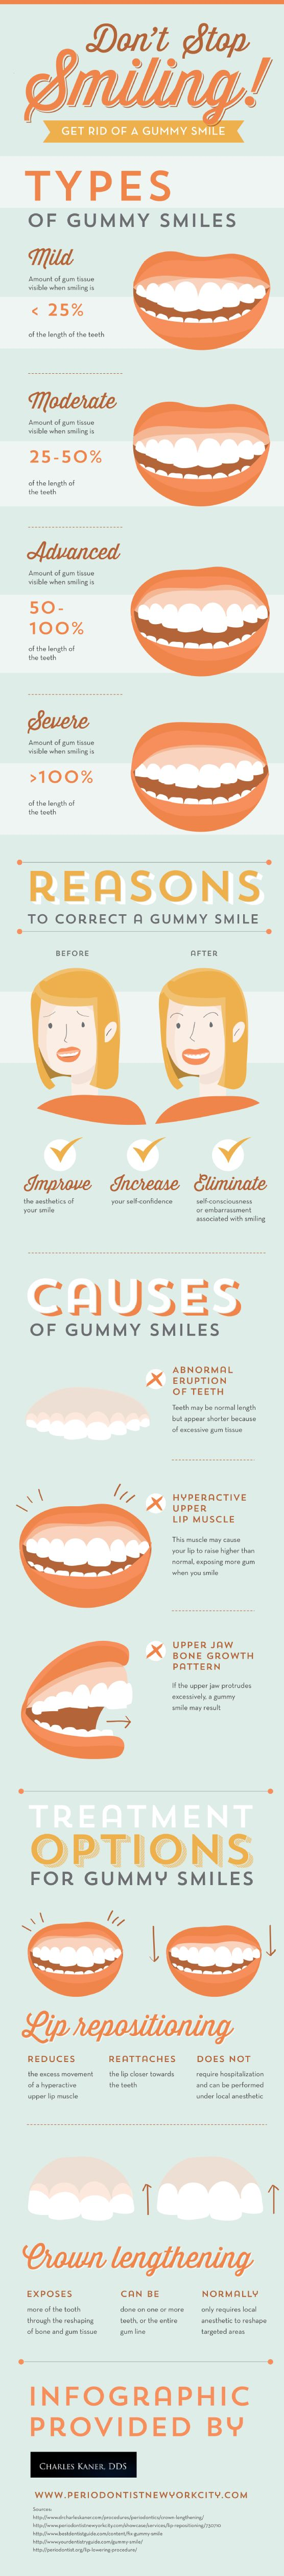 Don't Stop Smiling: Get Rid Of A Gummy Smile [INFOGRAPHIC] #smile #smiling. To have better reason to whiten your smiles